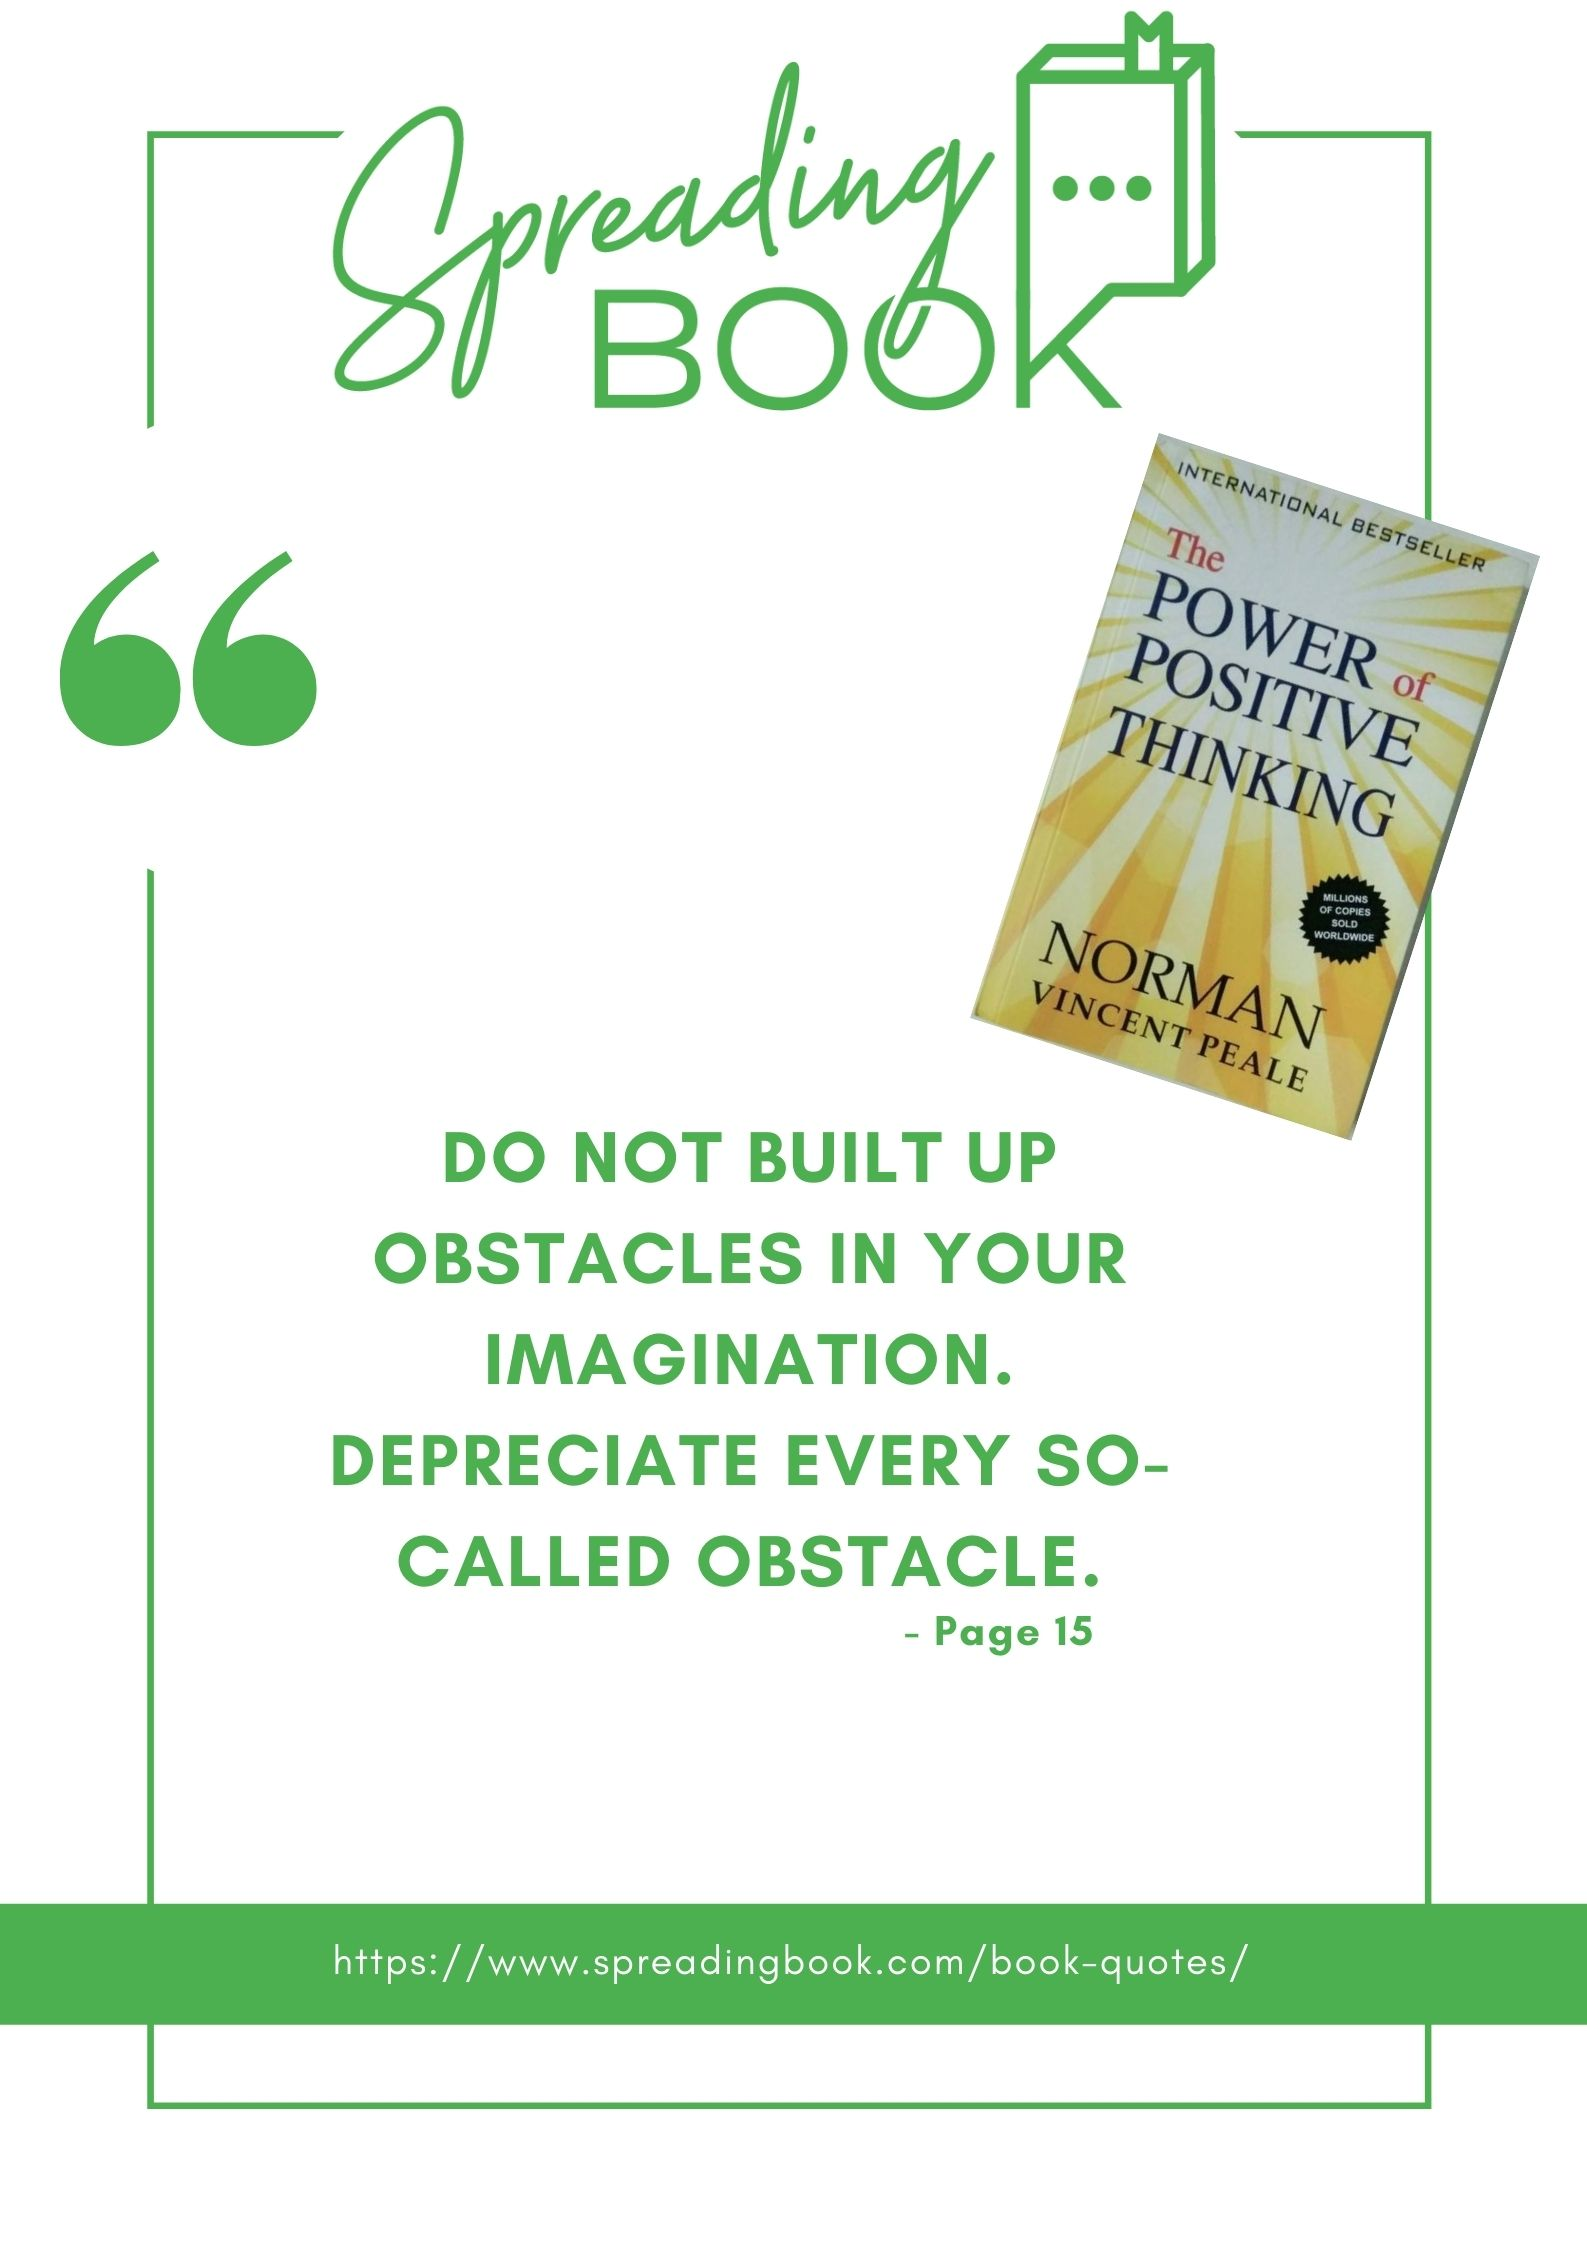 Do not built up obstacles in your imagination. Depreciate every so-called obstacle.